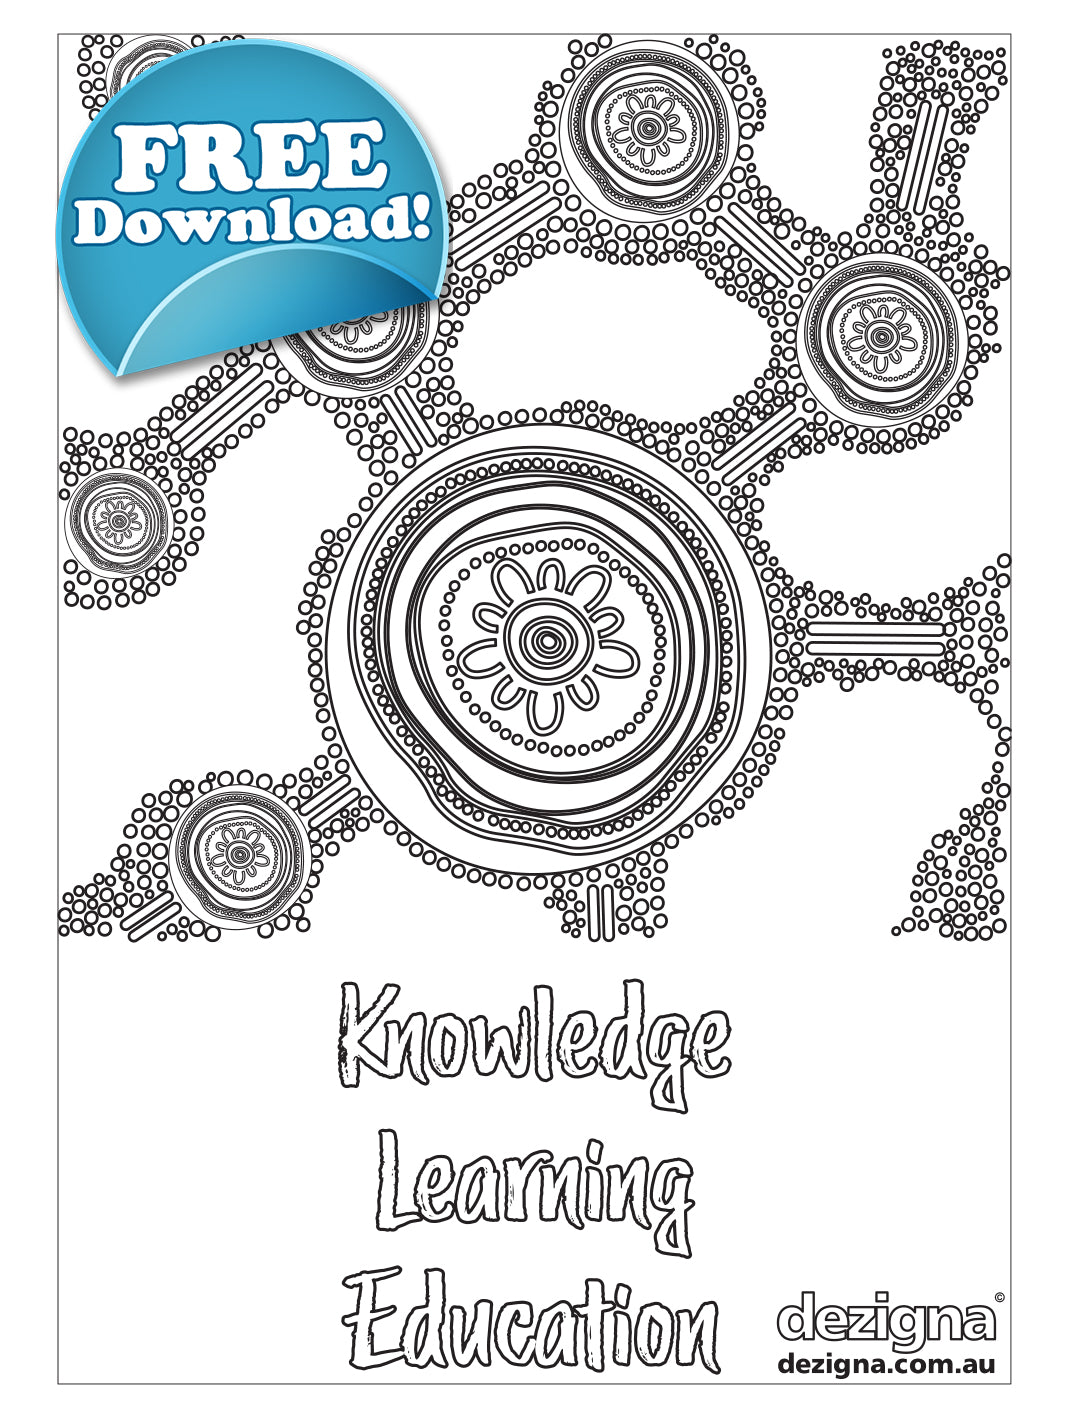 FREE DOWNLOAD - A4 EDUCATION Colouring Sheet